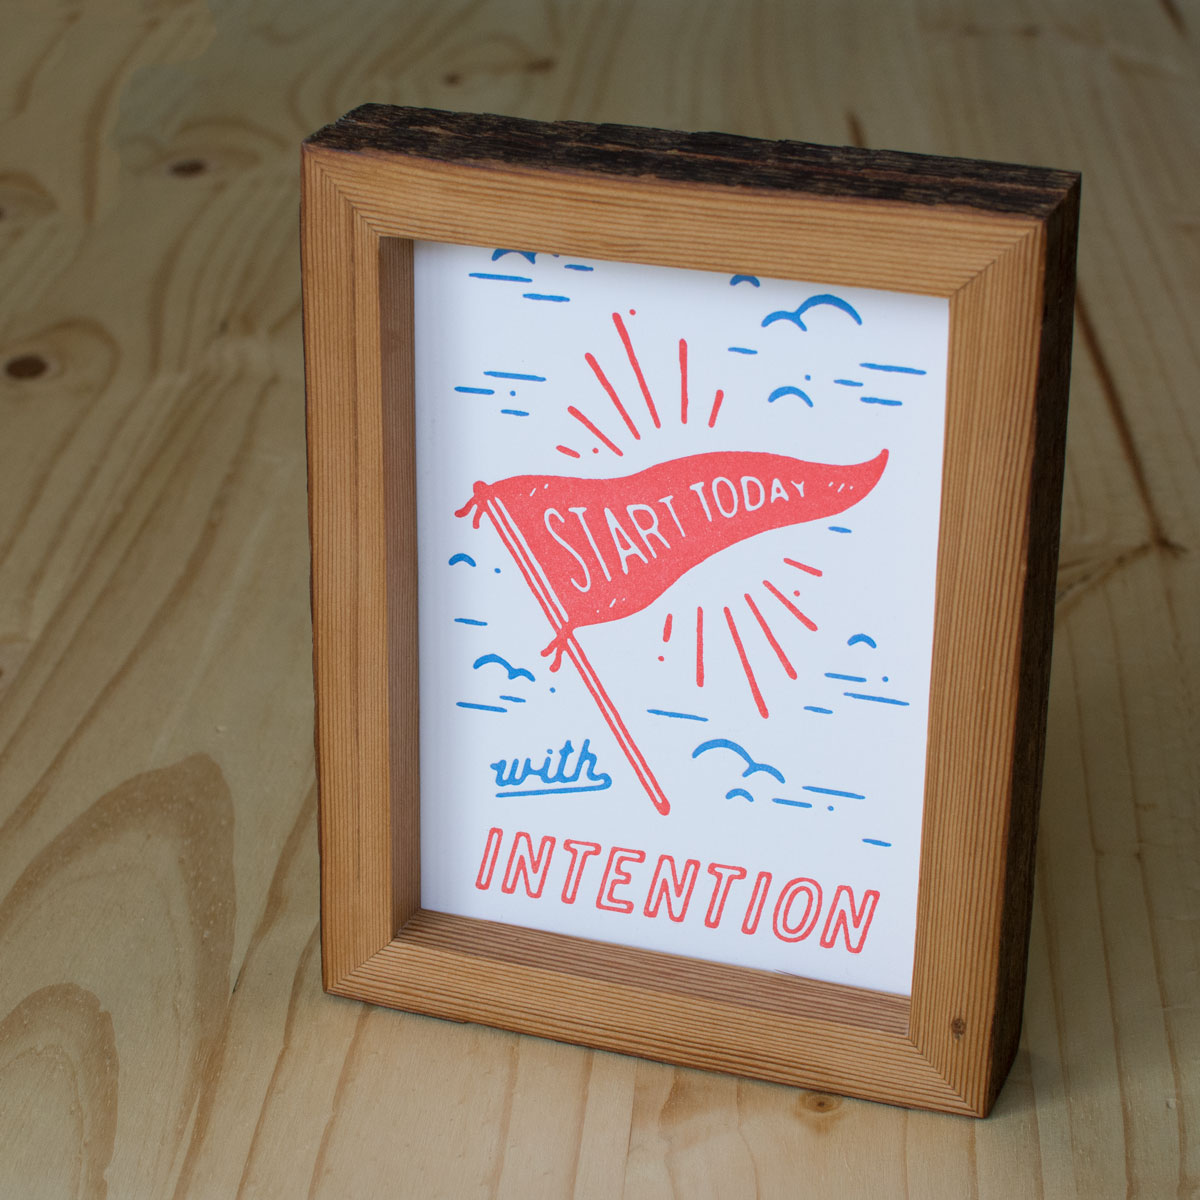 frame-plywood-intention-holstee-1200px.jpg